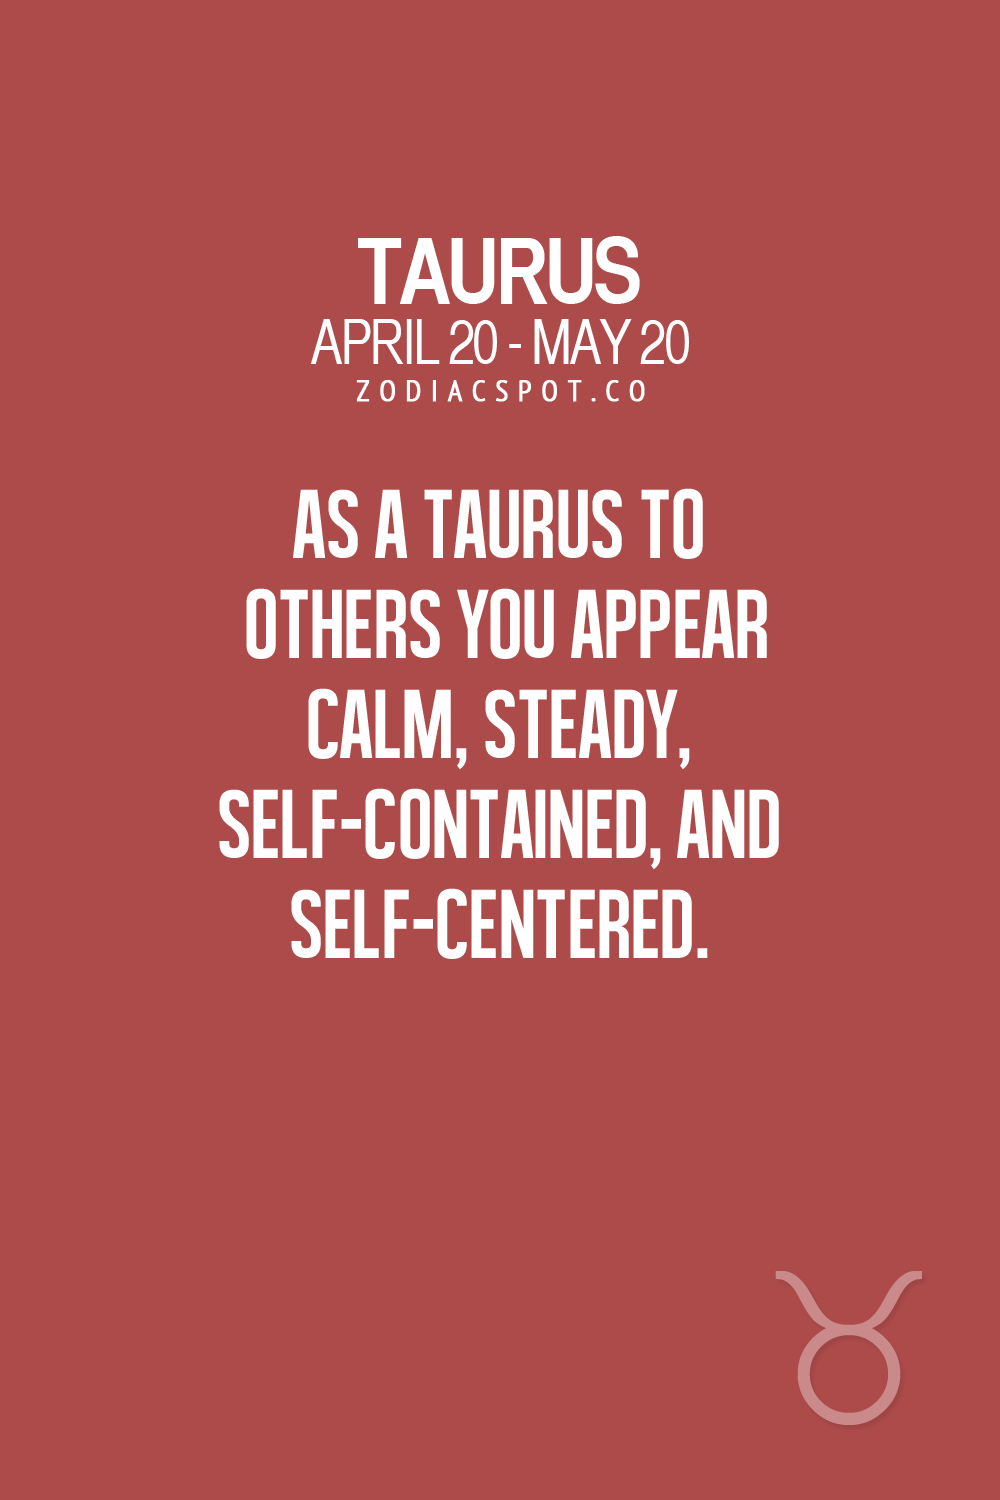 Taurus Quotes Read More About Your Zodiac Sign Here  About Methe Taurus The